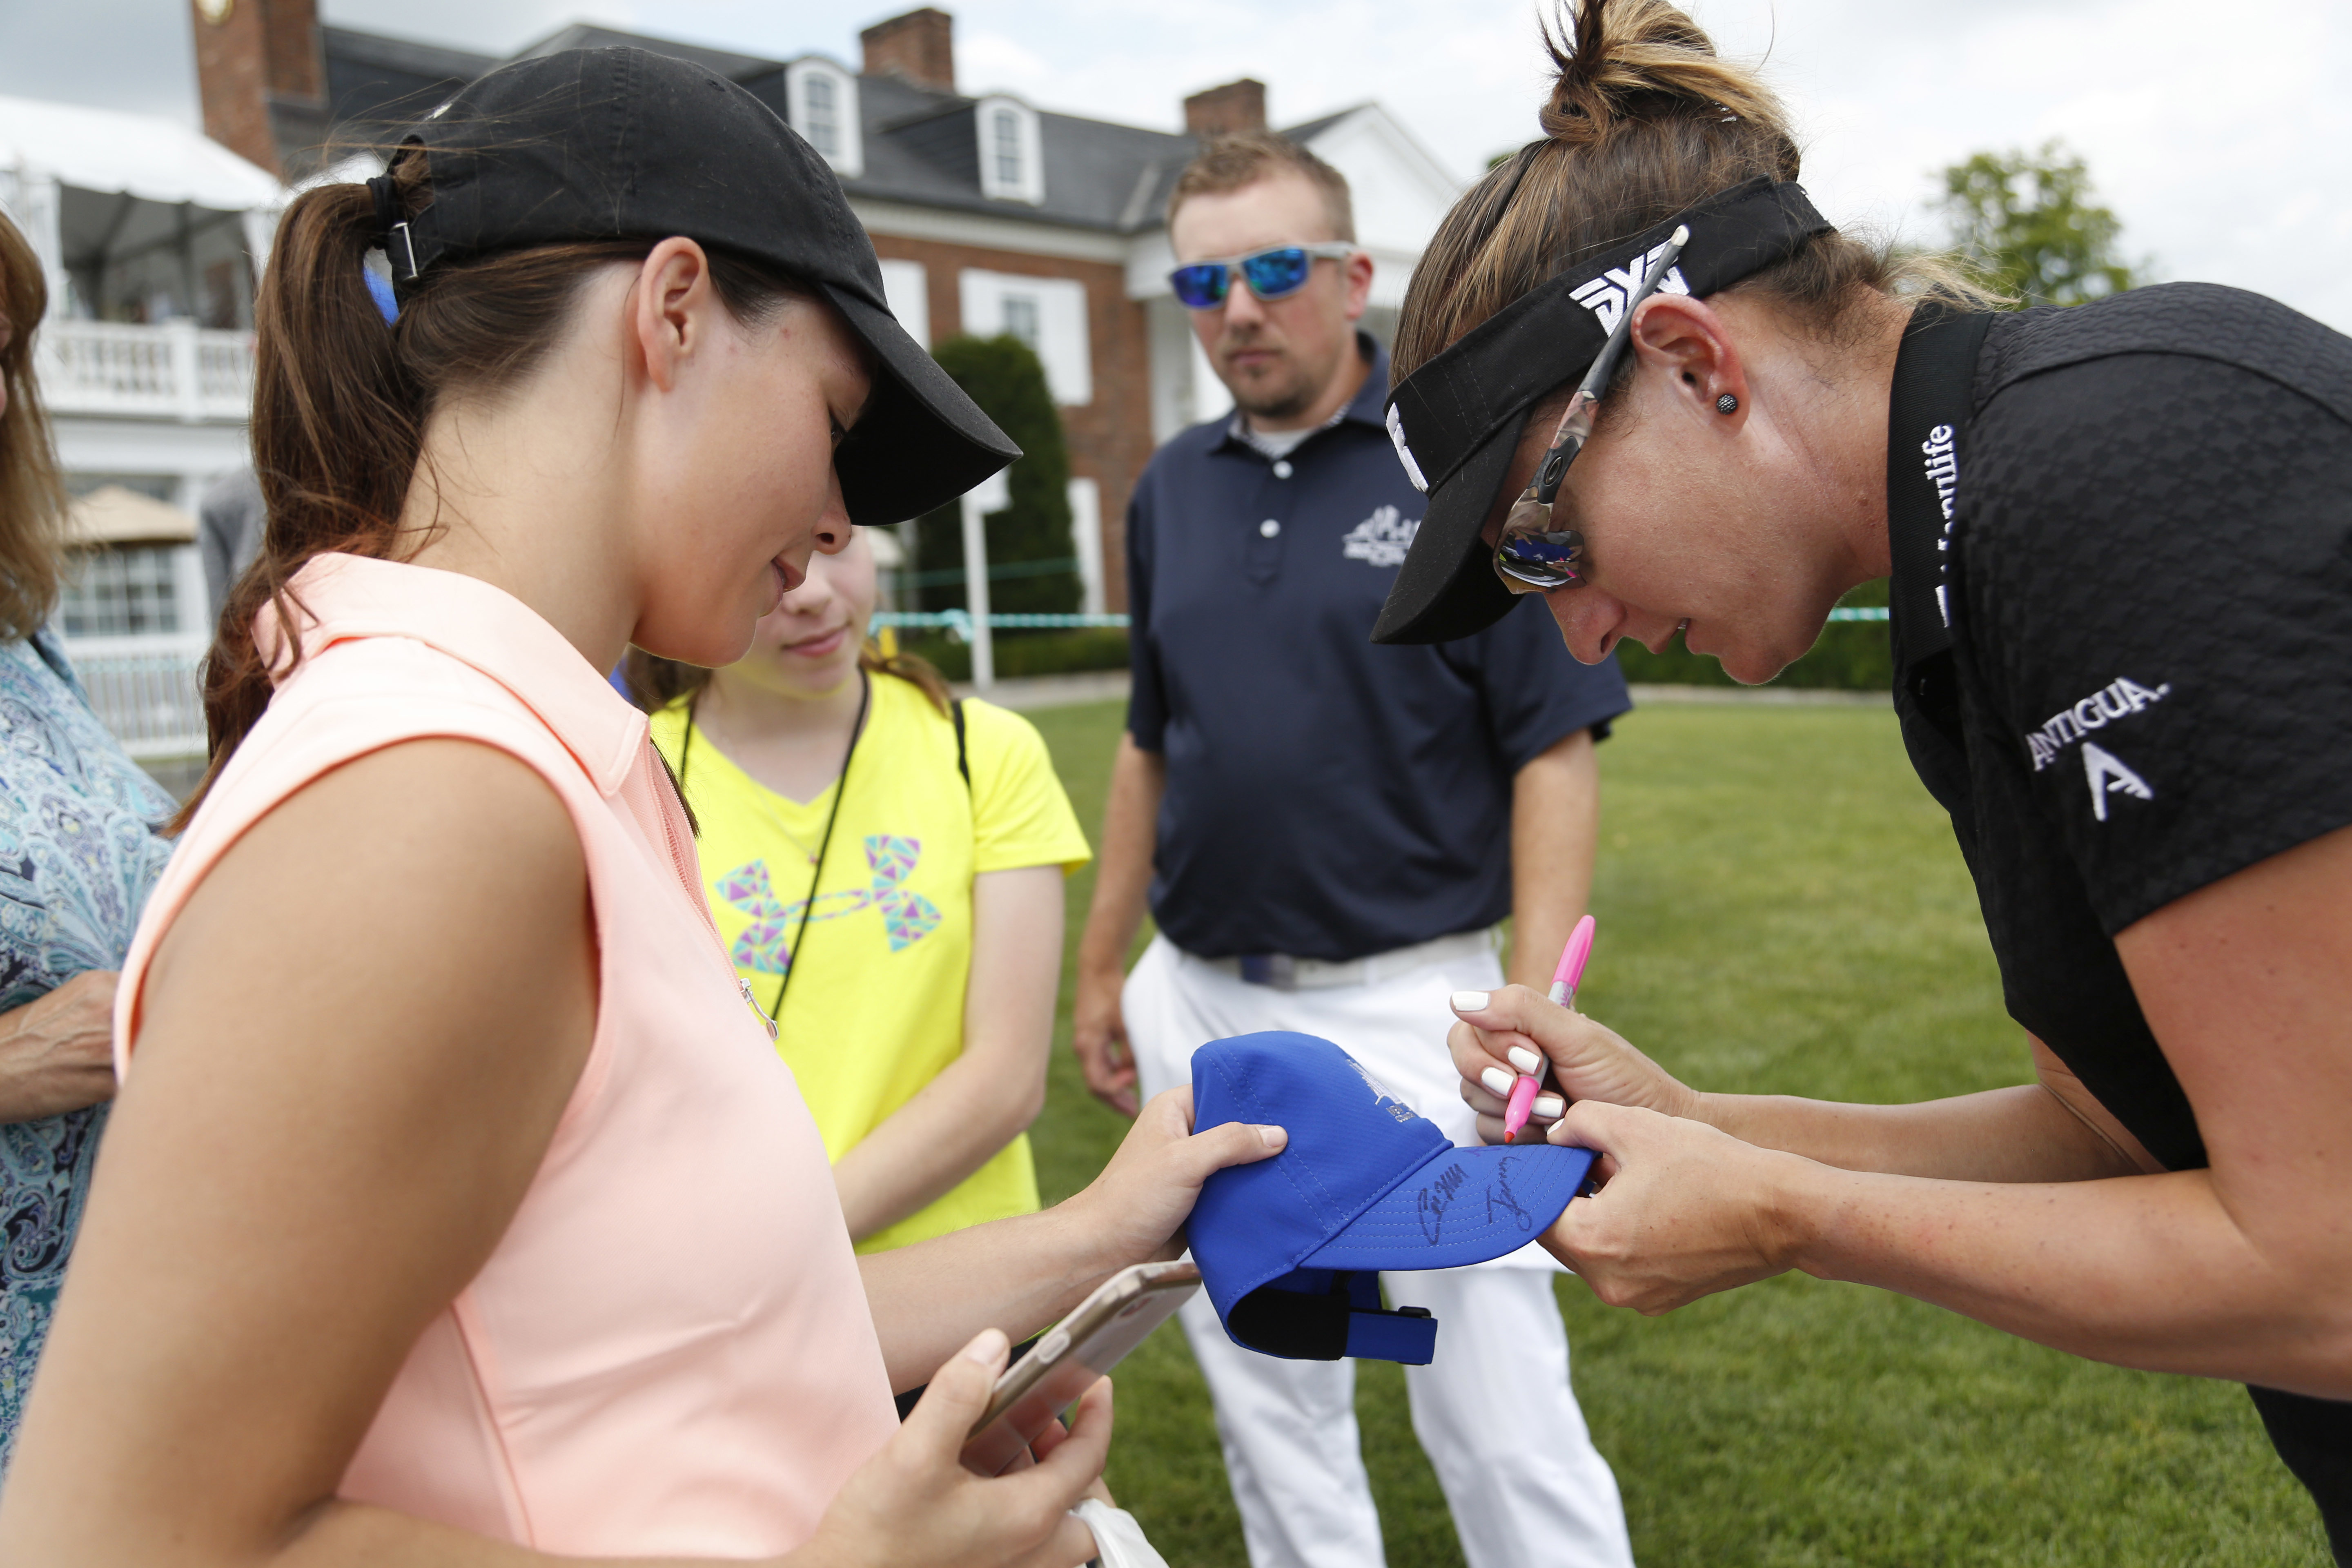 Brittany Lang signs a hat for a fan during a practice round for the U.S. Women's Open Golf Championship at Trump National Golf Club in Bedminster, N.J., Wednesday, July 12, 2017. (AP Photo/Seth Wenig)